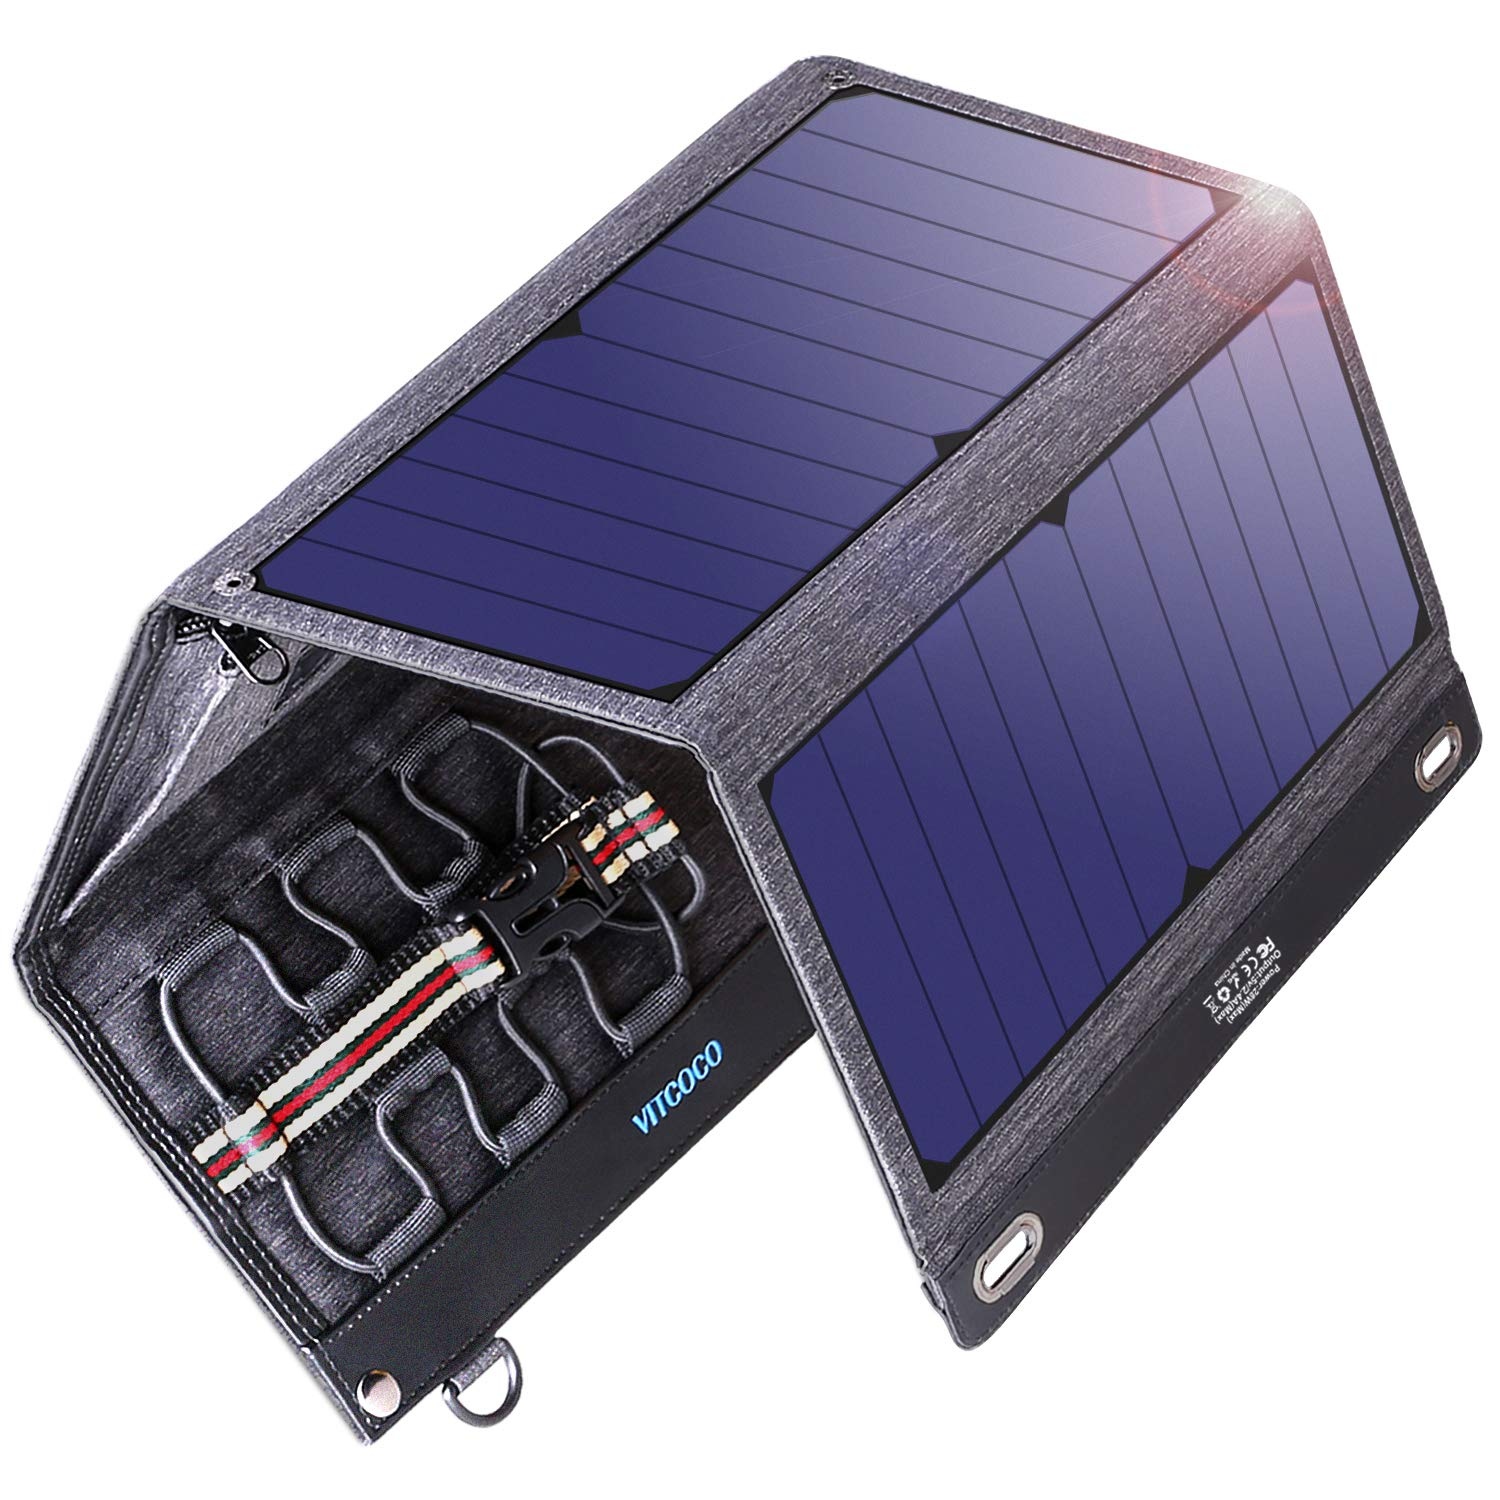 Solar Charger Solar Panel,VITCOCO 29W Solar Panel with Dual USB Ports 12V DC Output Current Display Function Waterproof Outdoor Portable Solar Panel Camping Travel for Cellphone,Tablet,Camera etc. by VITCOCO